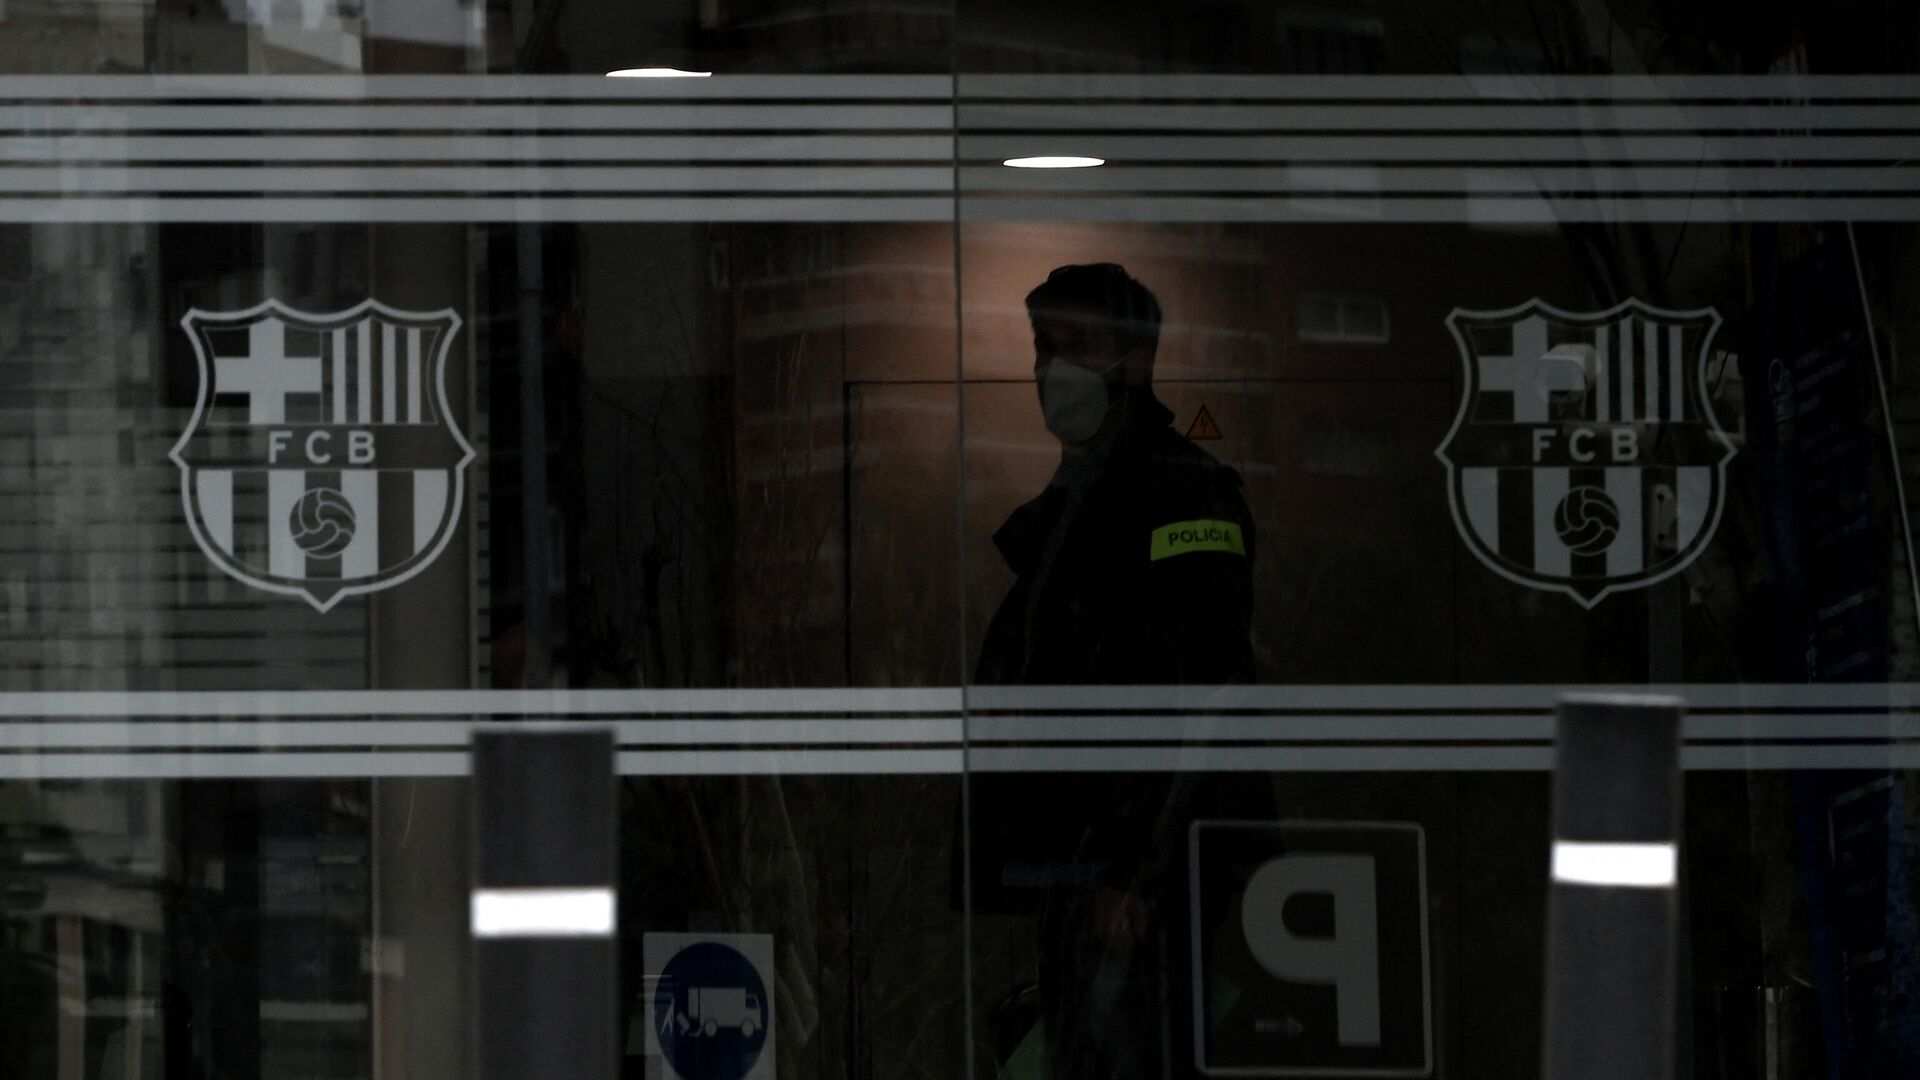 A policeman stands in the offices of the Barcelona Football Club on March 01, 2021 in Barcelona during a police operation inside the building. - Police raided the offices of FC Barcelona on March 01, 2021, carrying out several arrests just six days ahead of the club's presidential elections, a Catalan regional police spokesman told AFP. Spain's Cadena Ser radio said one of those arrested was former club president Josep Maria Bartomeu, who resigned in October, along with CEO Oscar Grau and the club's head of legal services. (Photo by LLUIS GENE / AFP) - РИА Новости, 1920, 02.03.2021